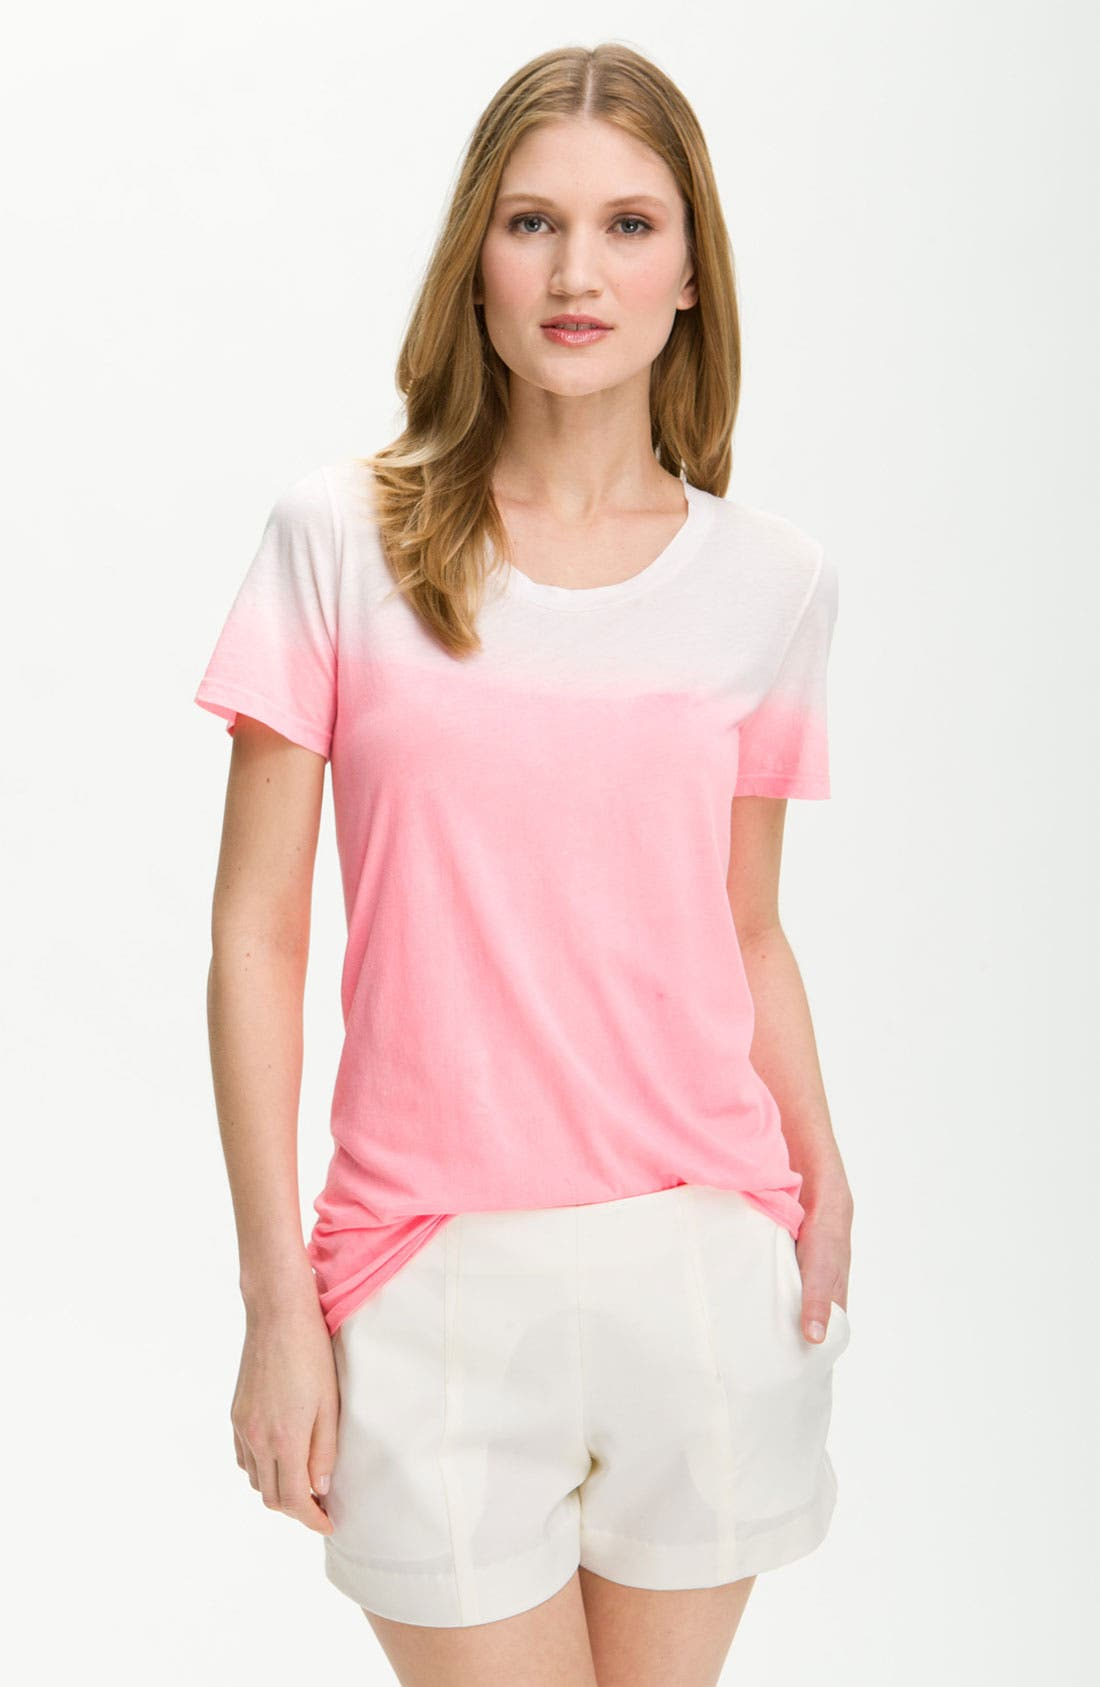 Alternate Image 1 Selected - Theory 'Cleo - Electrify' Dip Dye Tee